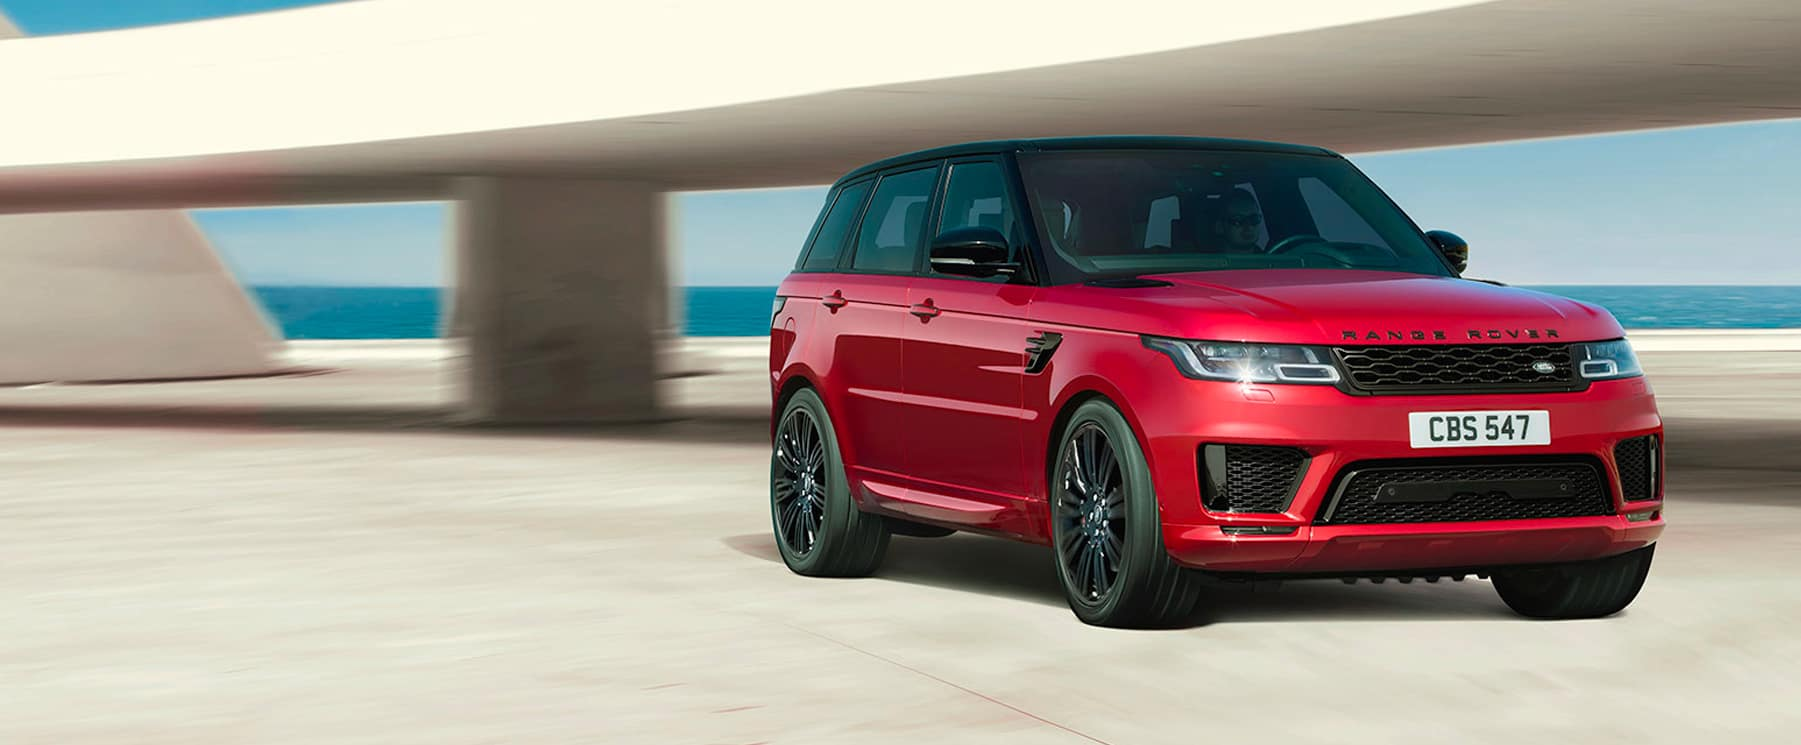 2018 range rover sport review prices specs trims land rover louisville. Black Bedroom Furniture Sets. Home Design Ideas